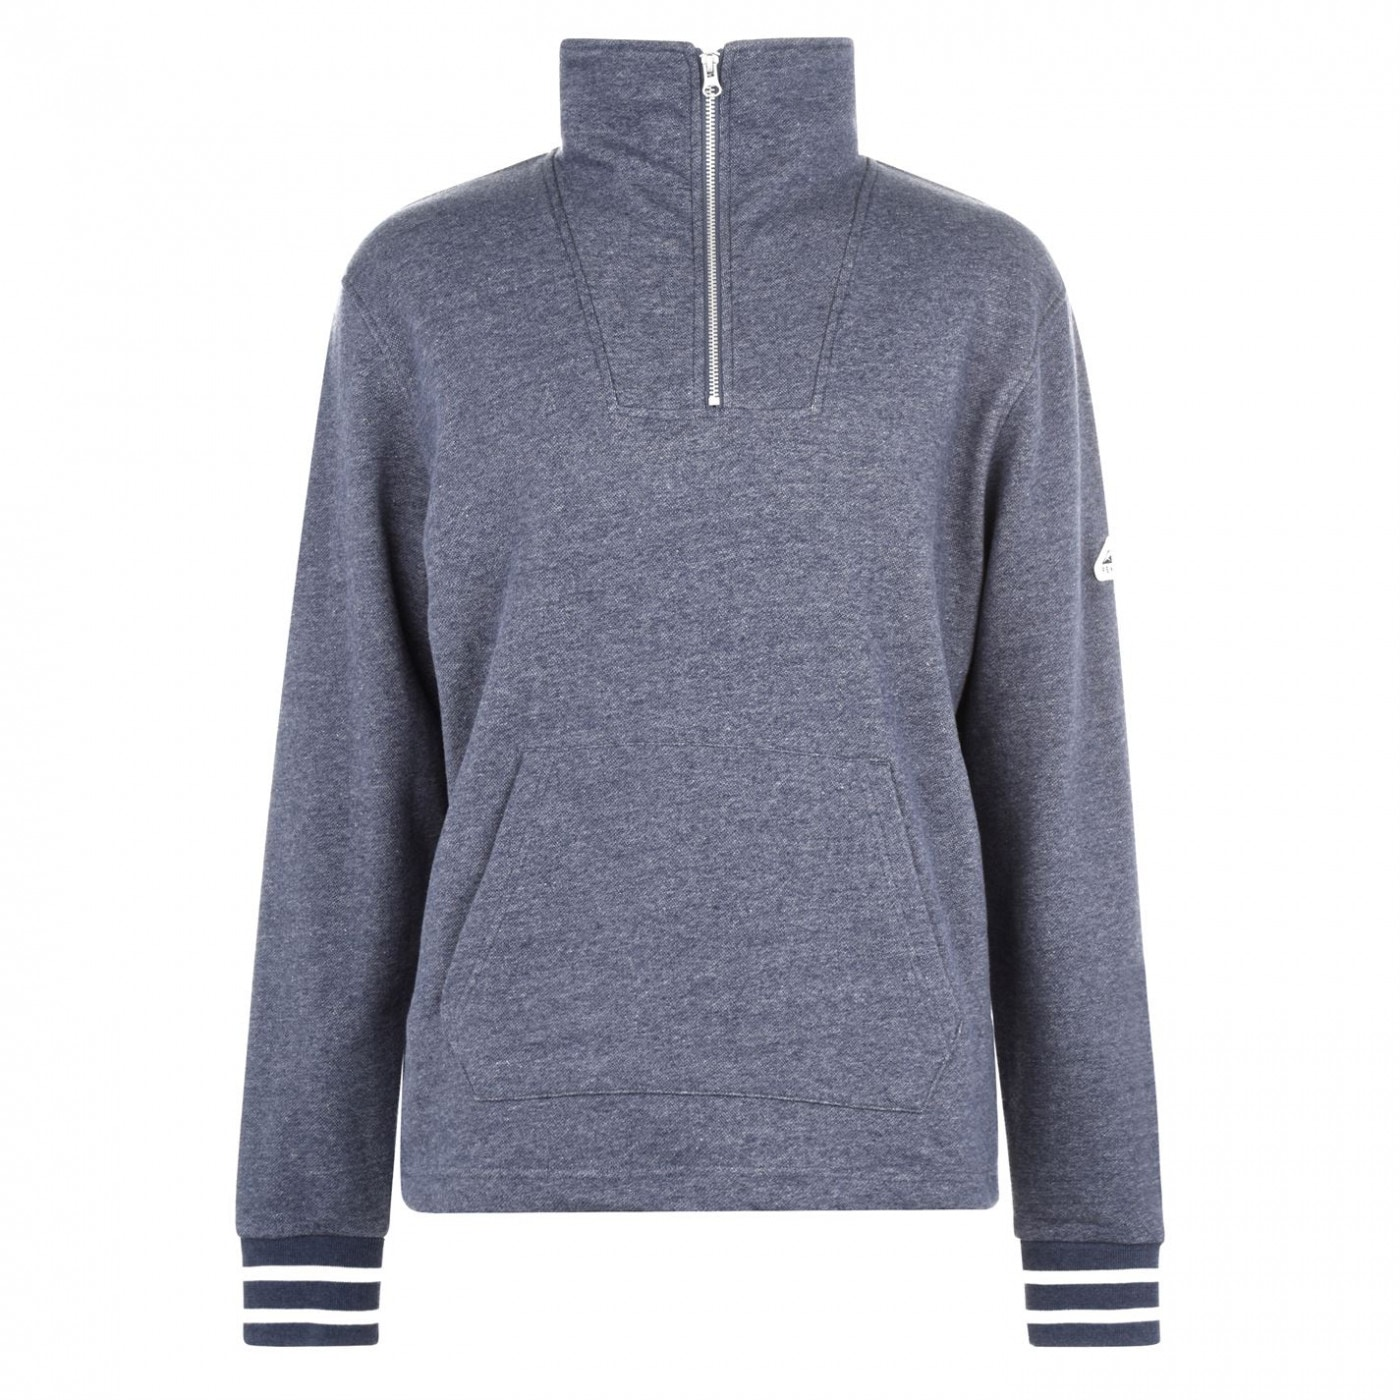 Penfield Willow Sweater